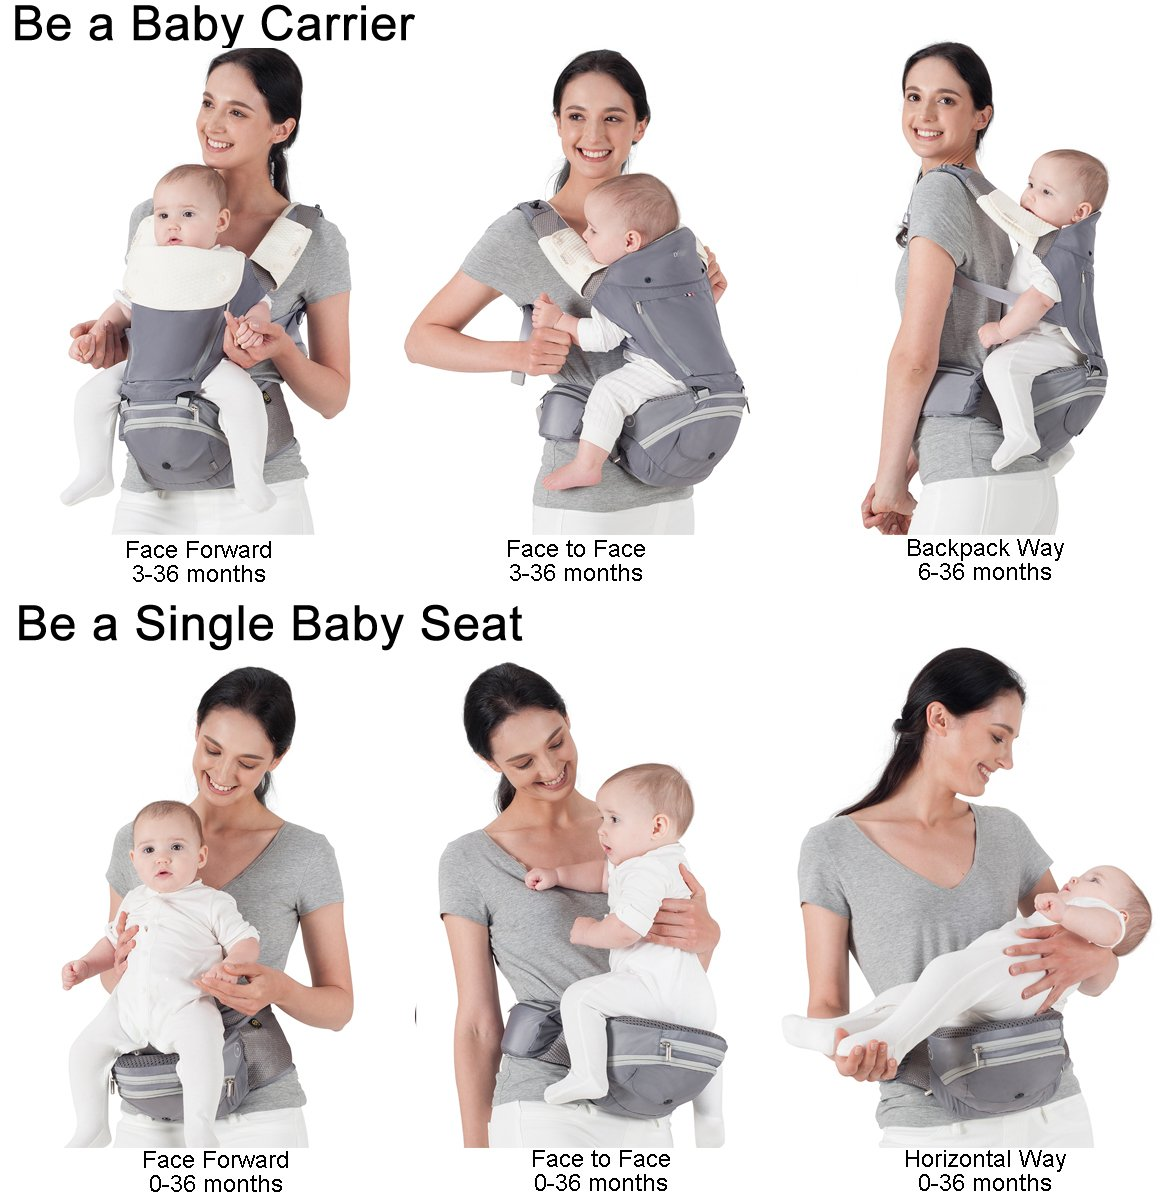 """Bebamour Baby Carrier Hip Seat 6 in 1 Clasical Baby Carrier Backpack 0-36 Months with 3PCS Baby Drool Bibs, Convertible Baby Carrier (Black) bebear ★SPORTY CHIC - The baby carrier is used soft classical cotton with polyester touching. The breathable effective is more than 76% which is better than ordinary cotton. Baby will feel best comfort and soft in it. ★C+M DESIGNED - Ergonomic baby carrier is all parents' pursue. The hip seat is designed according to baby's develoment. Size: L9.8""""*H11.8""""*W7""""(L25*H30*W18CM); Weight is about 1.82 lbs(0.83KG). The upper part can be detached to be a single seat. You can put baby in 3 ways, horizontal, face-forward and face-inward. ★GOLDEN RATIO - Best comfort for baby who is from 3-36months and whose biggest weight is about 33 lbs (14.9KG). Baby can be carried in another 3 ways by face-forward, face-inward and backpack position. 2"""